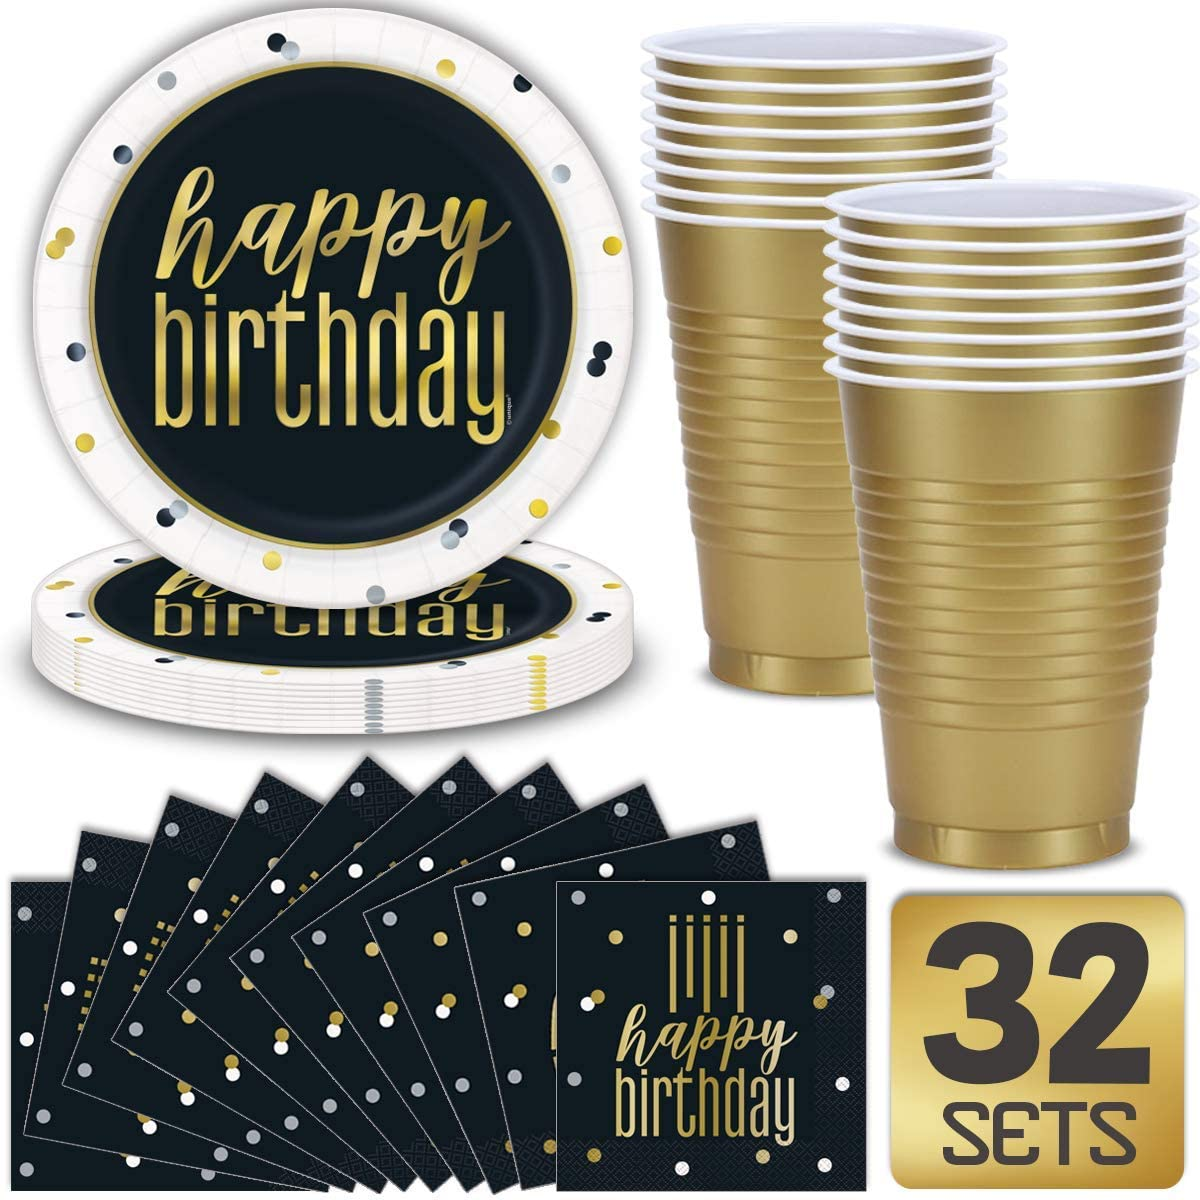 Set for 32 Birthday Party Supplies in Metallic Gold, Black and White Theme Includes: Paper Plates, Luncheon Napkins, 16 oz Cups, Classy and Stylish Design